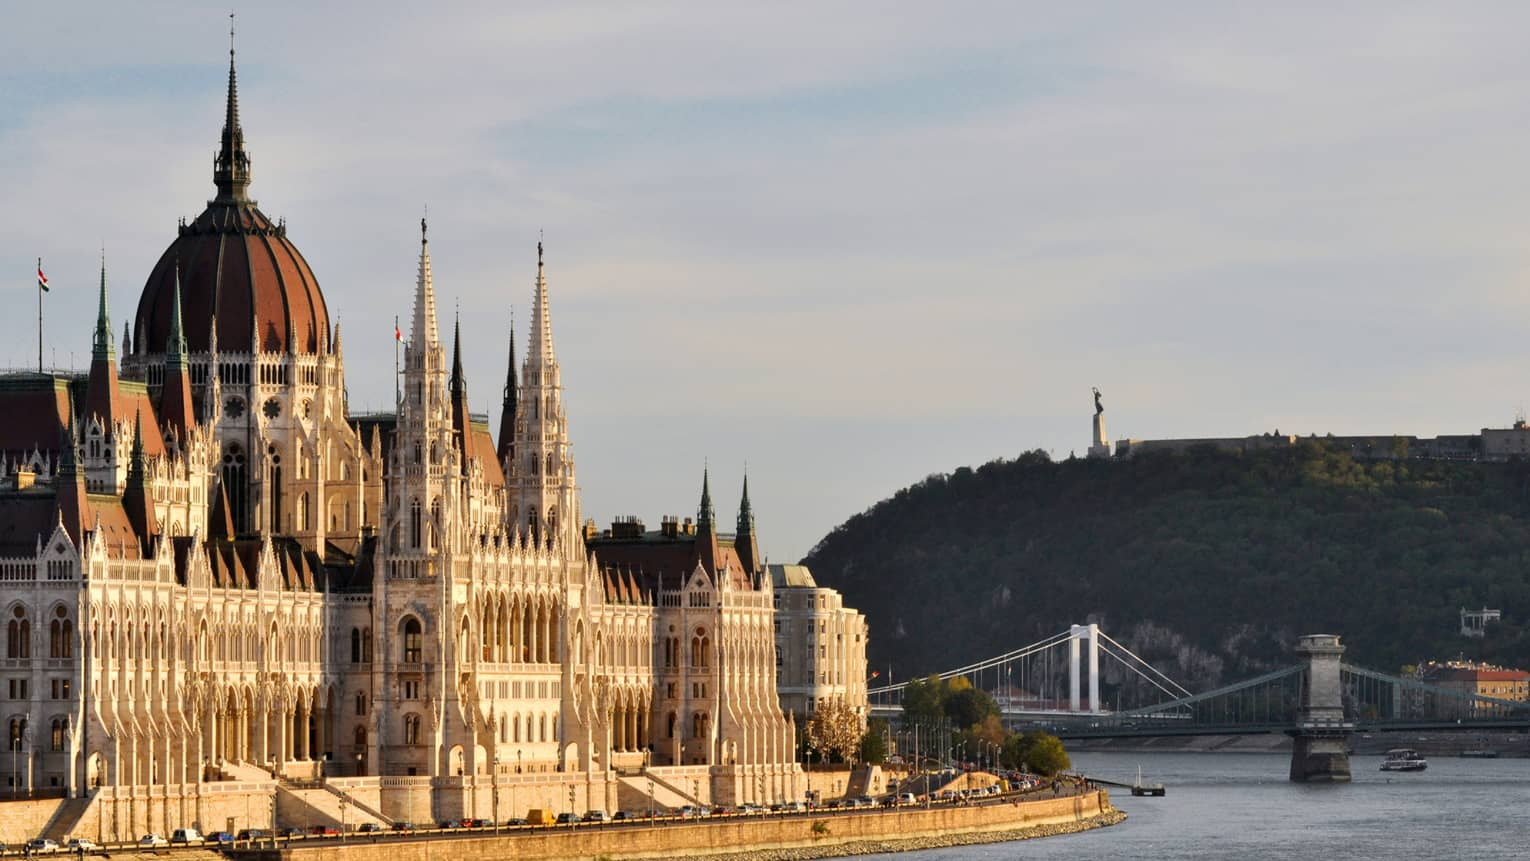 Exterior view of sun shining on the Hungarian Parliament Building beside the Chain Bridge